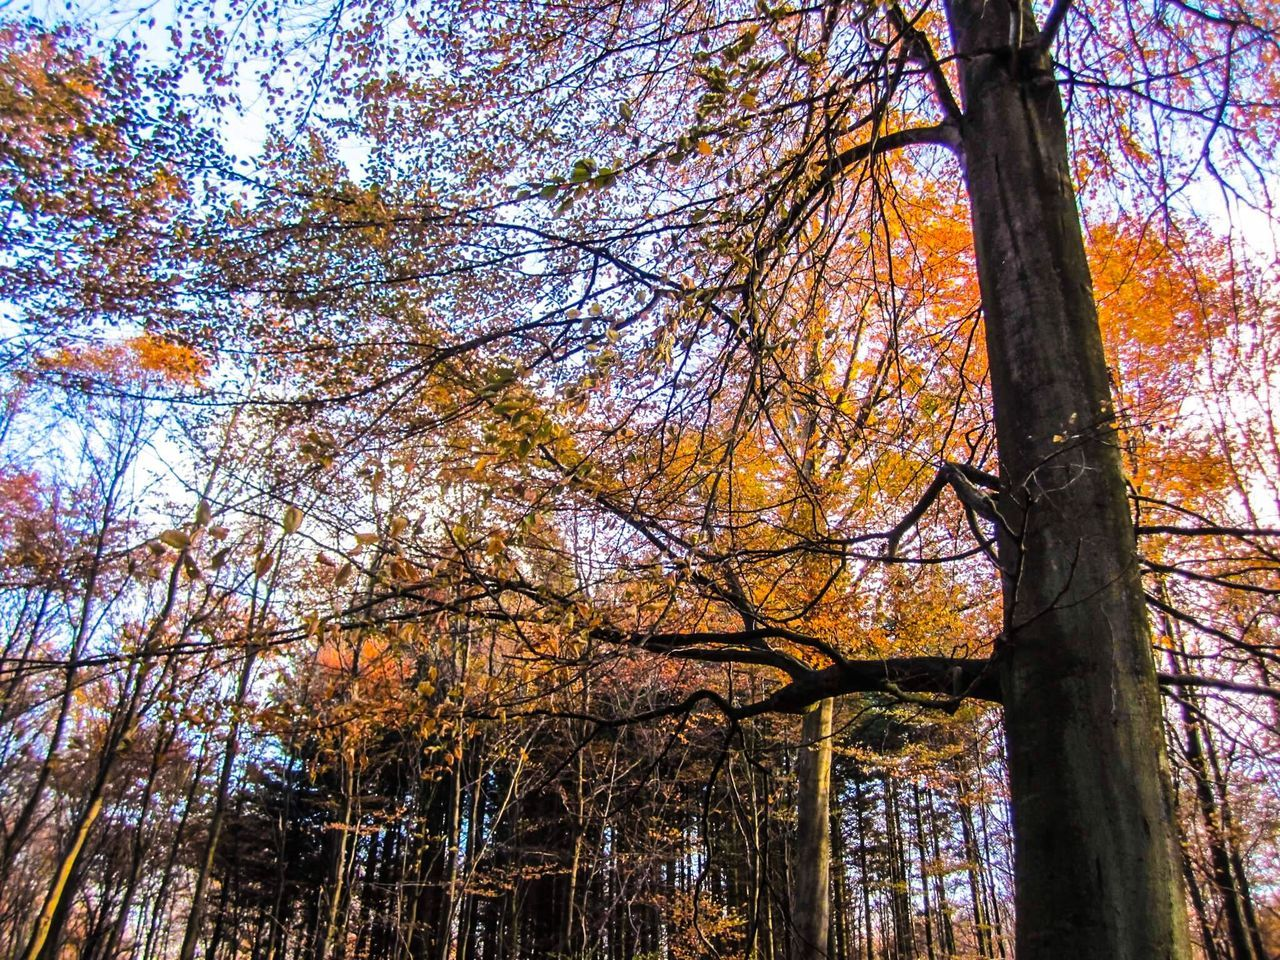 Tree Tree Trunk Low Angle View Forest Nature Branch Growth Beauty In Nature Autumn No People Day Outdoors WoodLand Scenics Tranquil Scene Tranquility Leaf Sky EyeEm Nature Lover EyeEm Best Shots - Nature Nature Photography Nature_collection Denmark Danmark Skodsborg